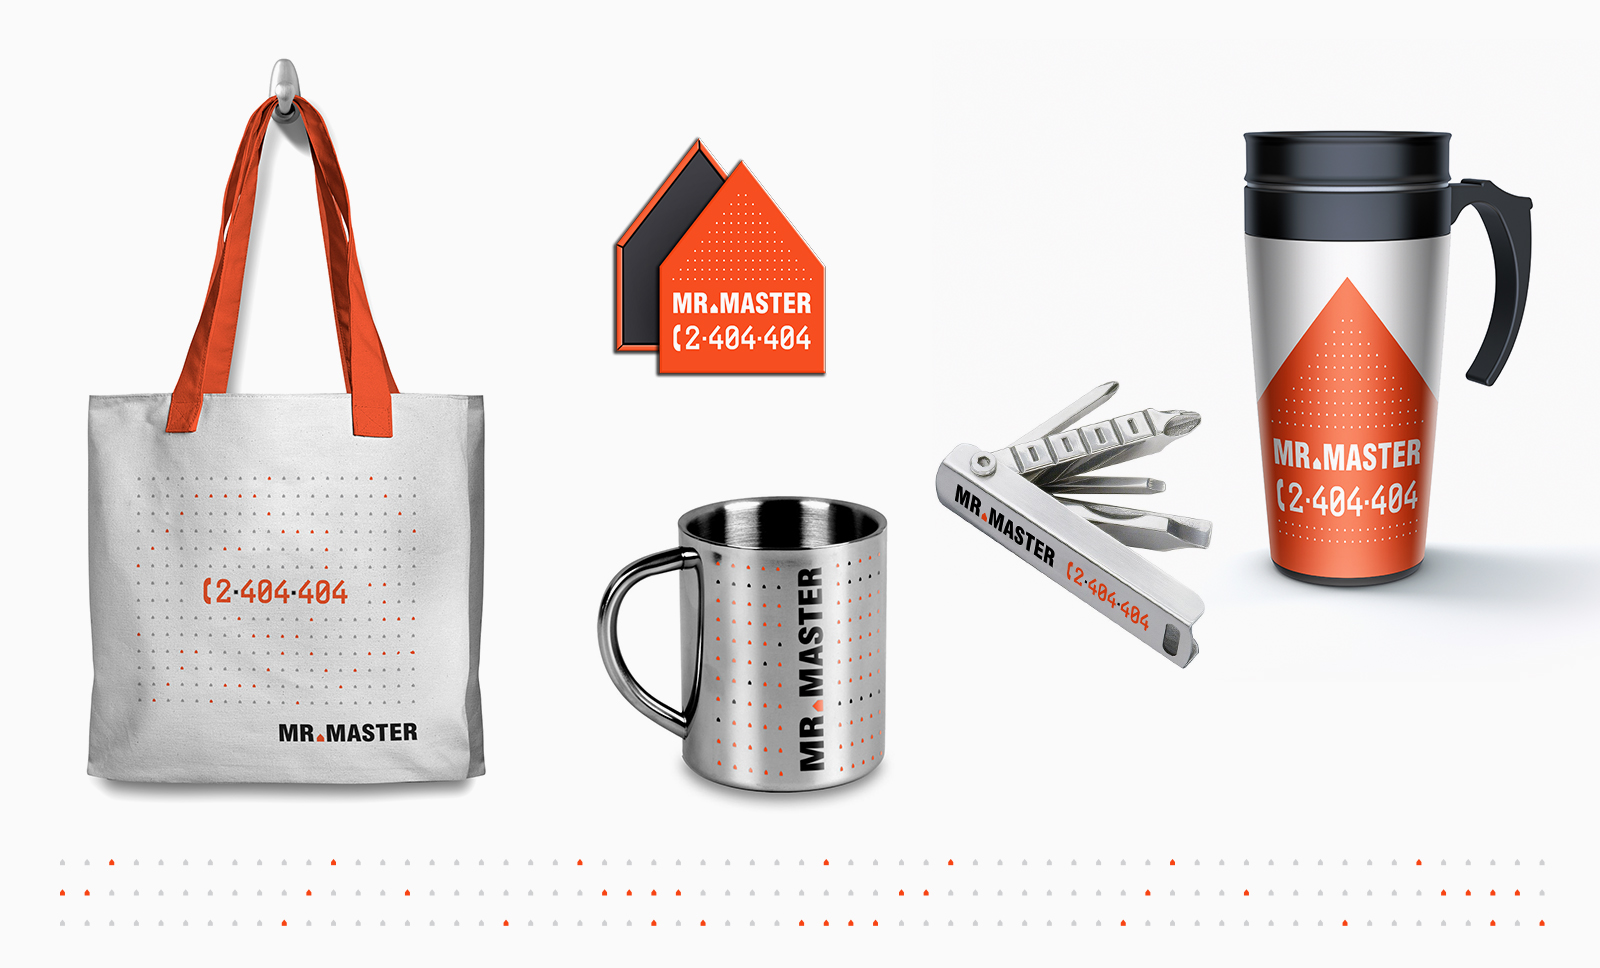 Mr Master Mugs and Bags